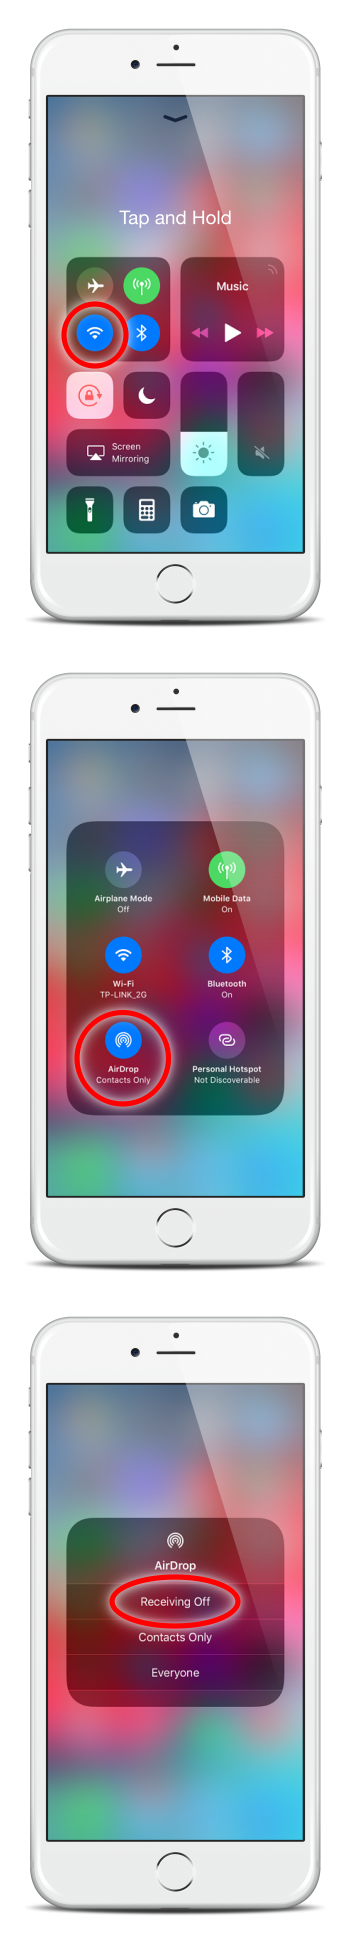 turn off airdrop on iPhone